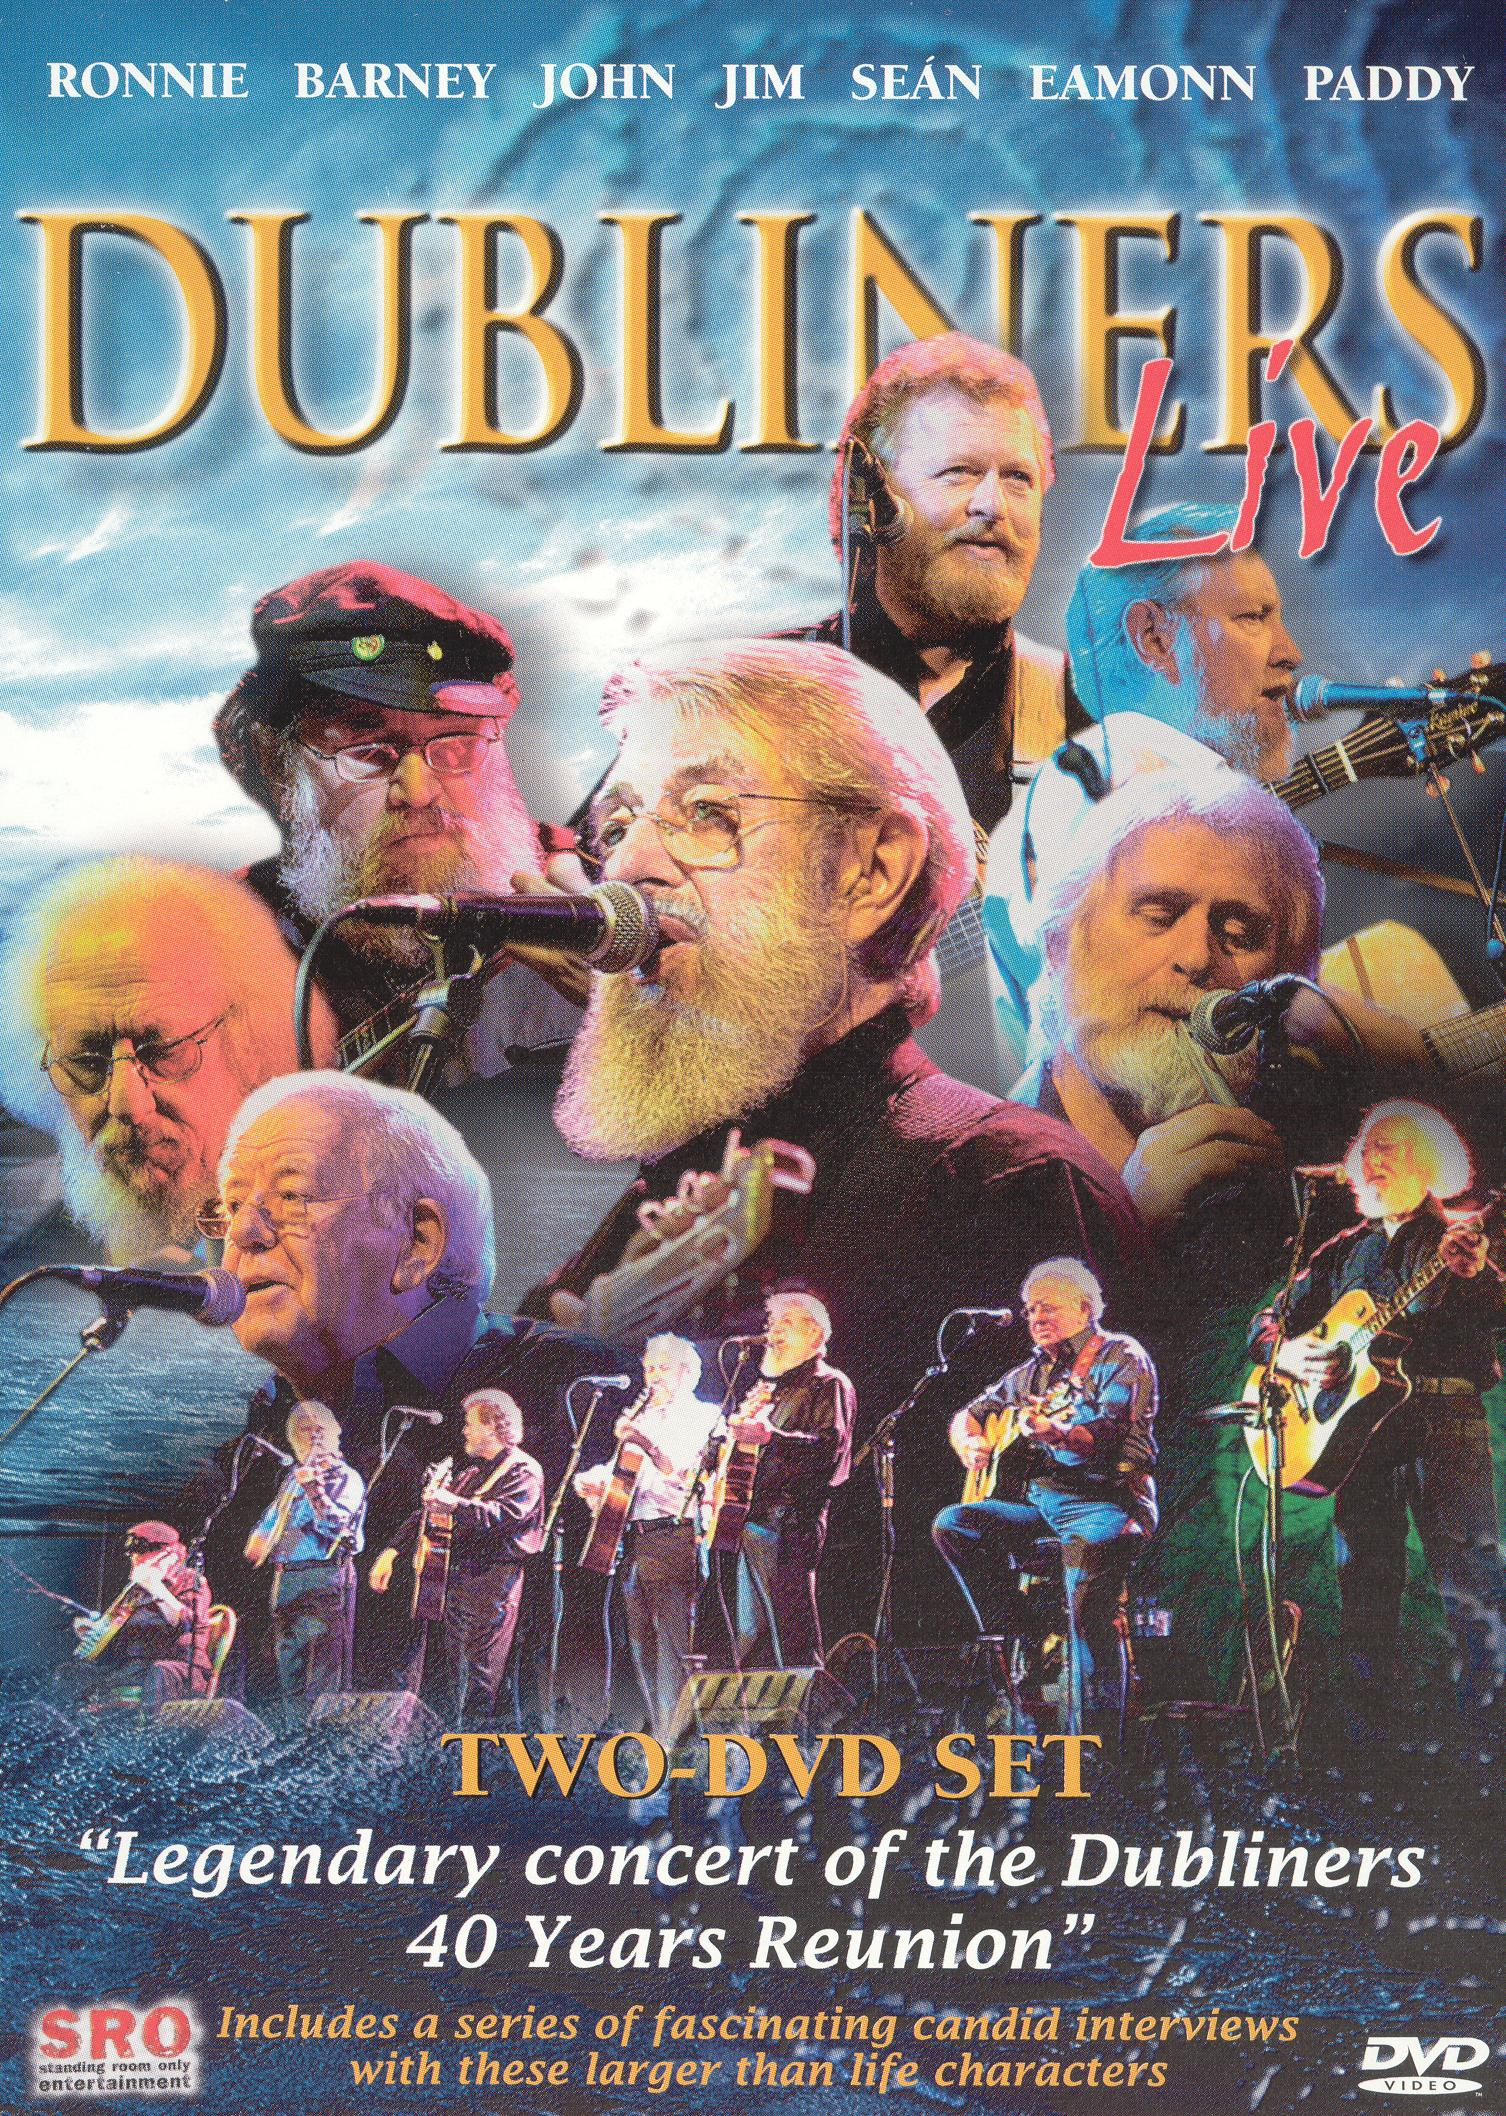 Dubliners Live